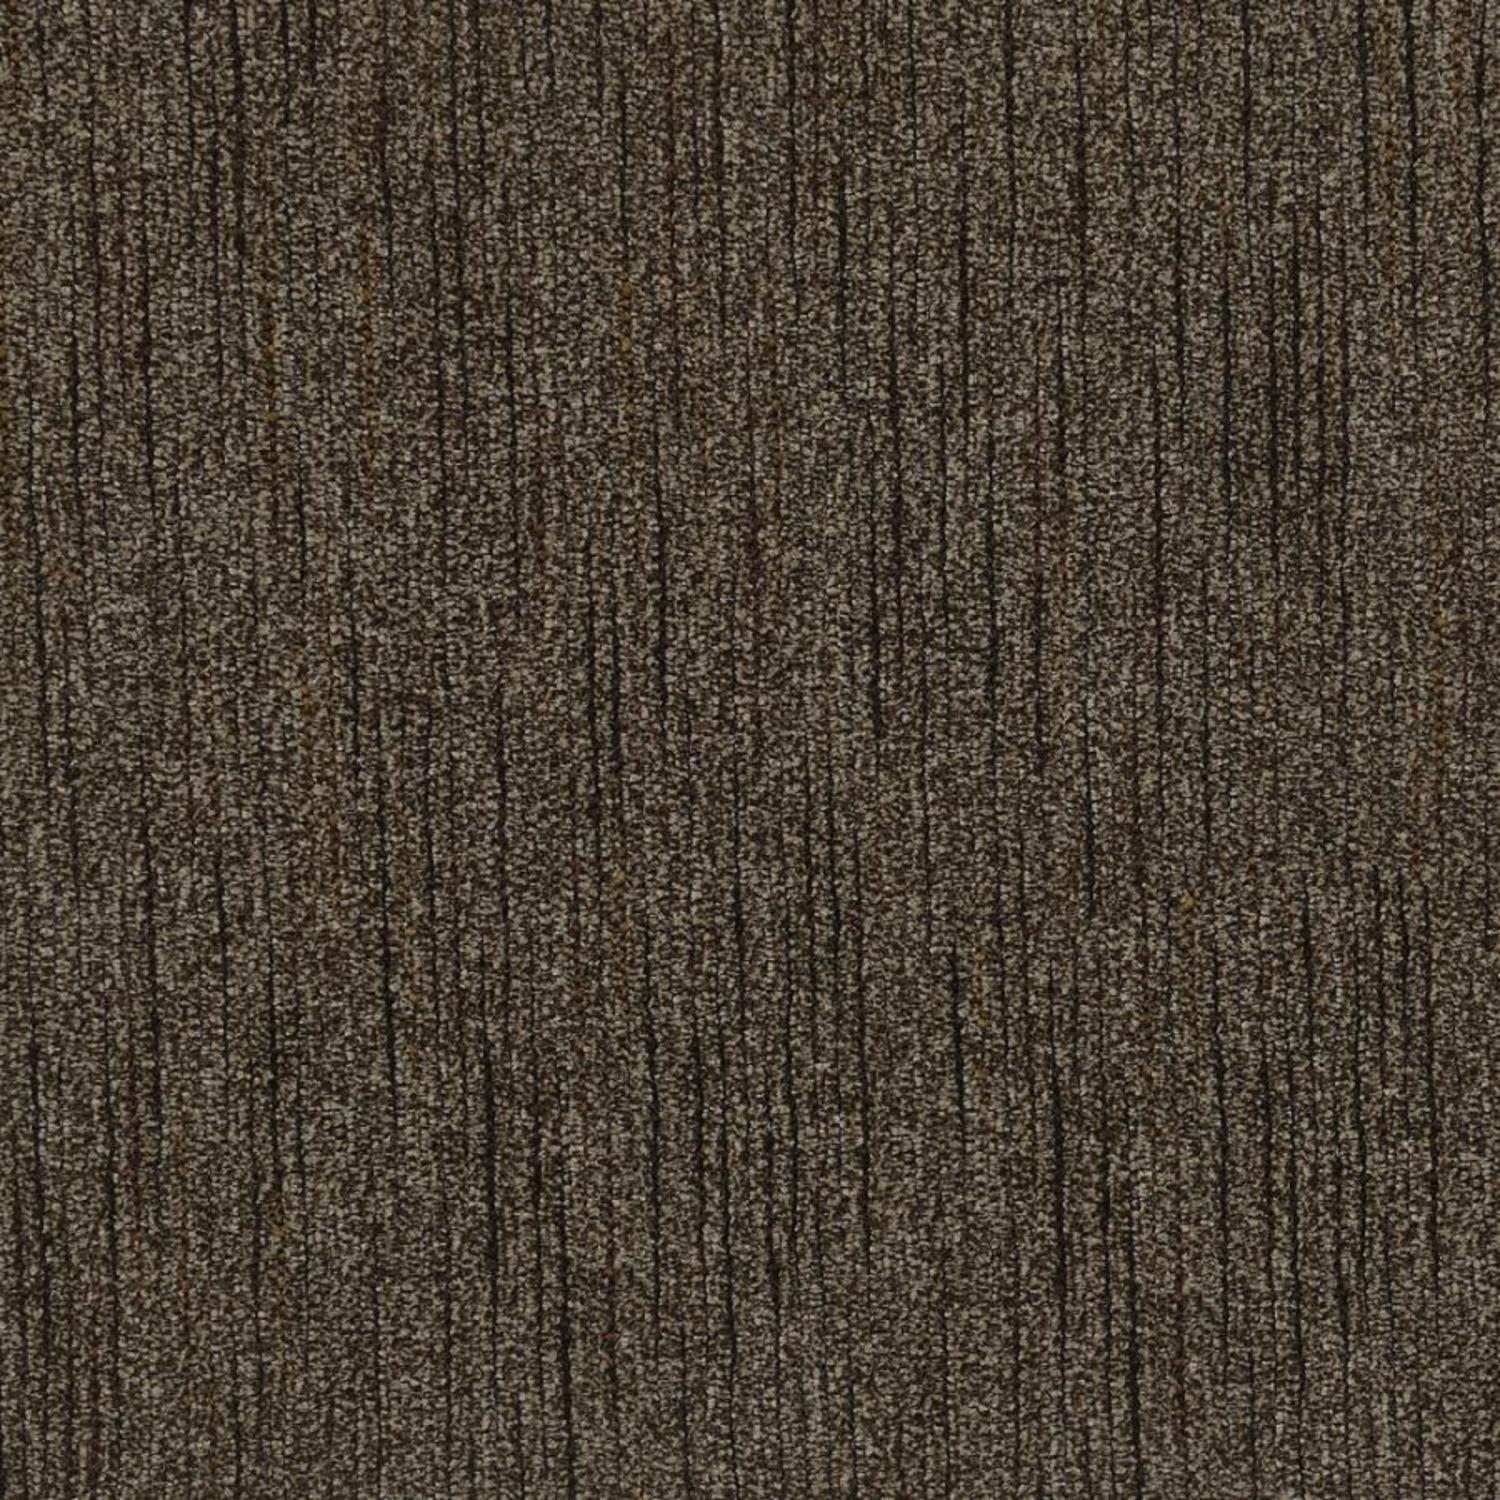 Sectional In Multi-Tonal Brown Chenille Upholstery - image-8